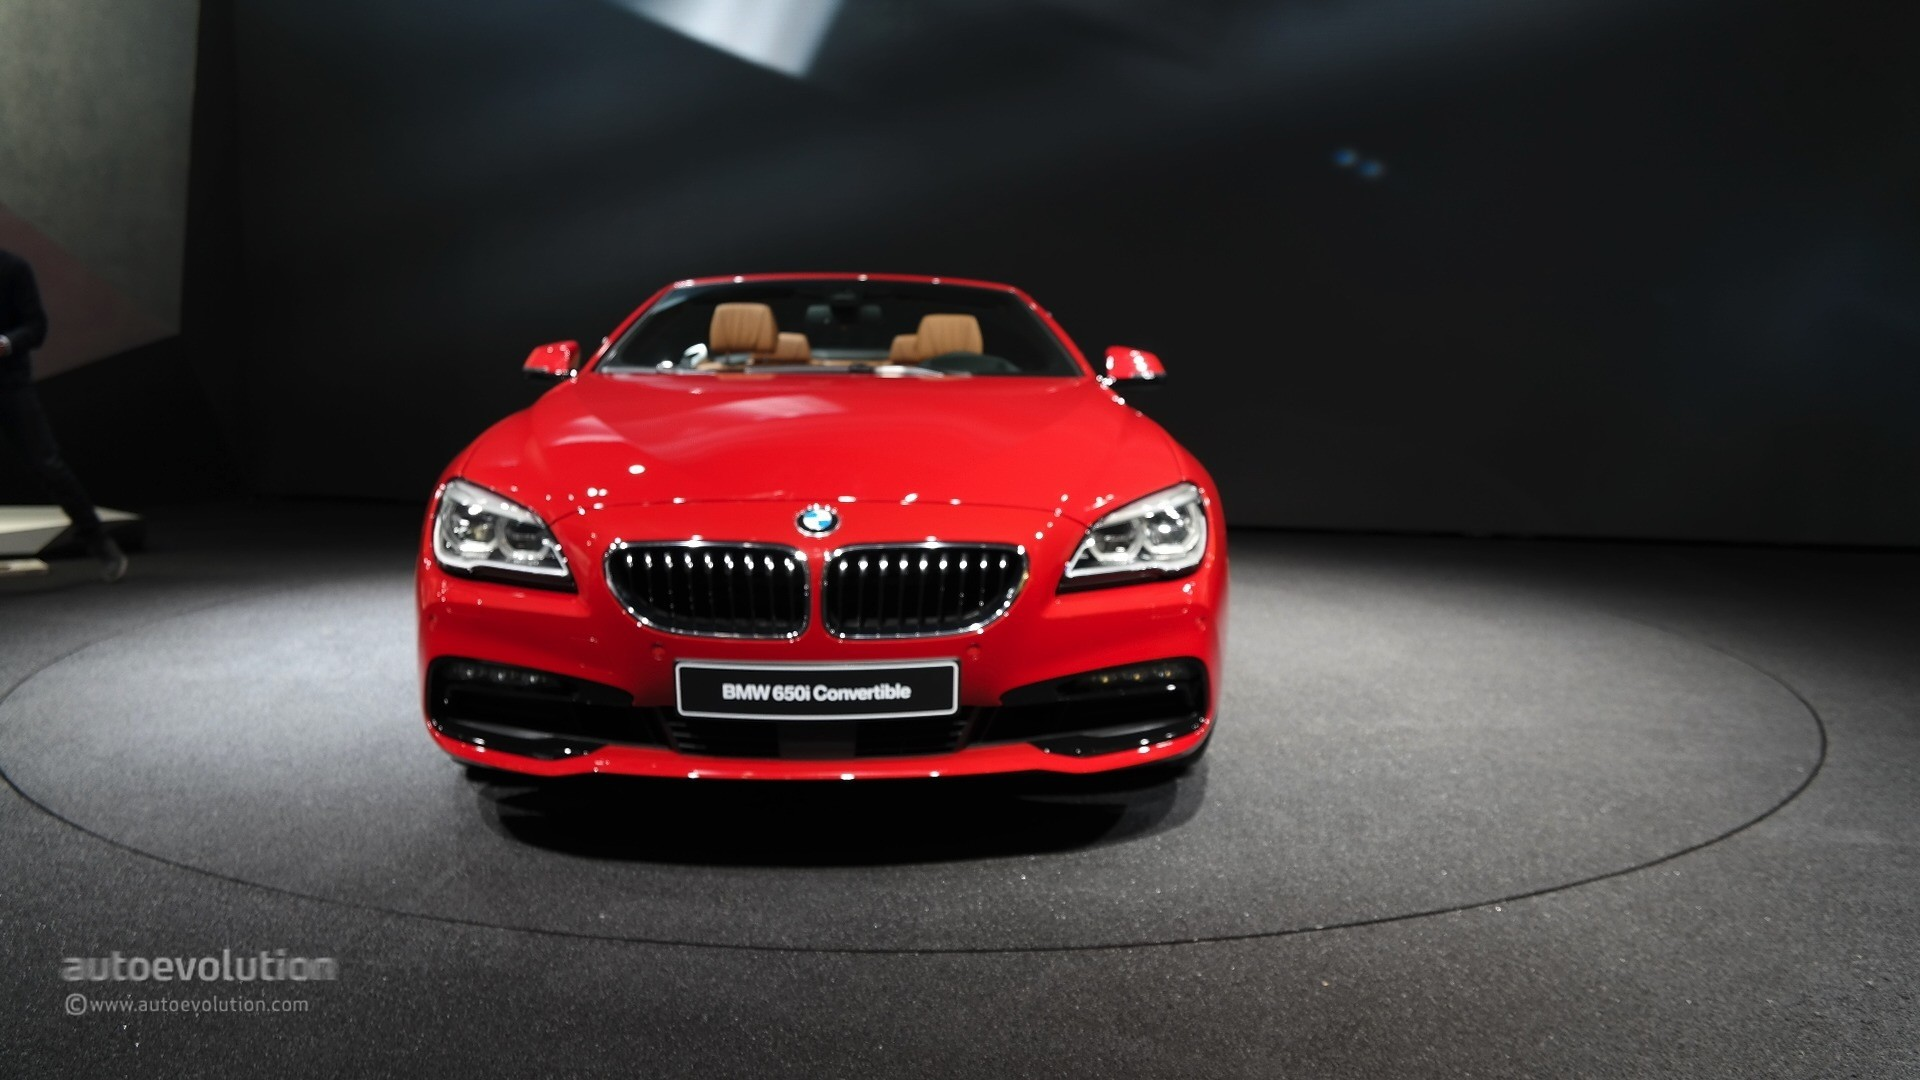 2015 BMW 6 Series Facelift Coupe and Gran Coupe Show Class at